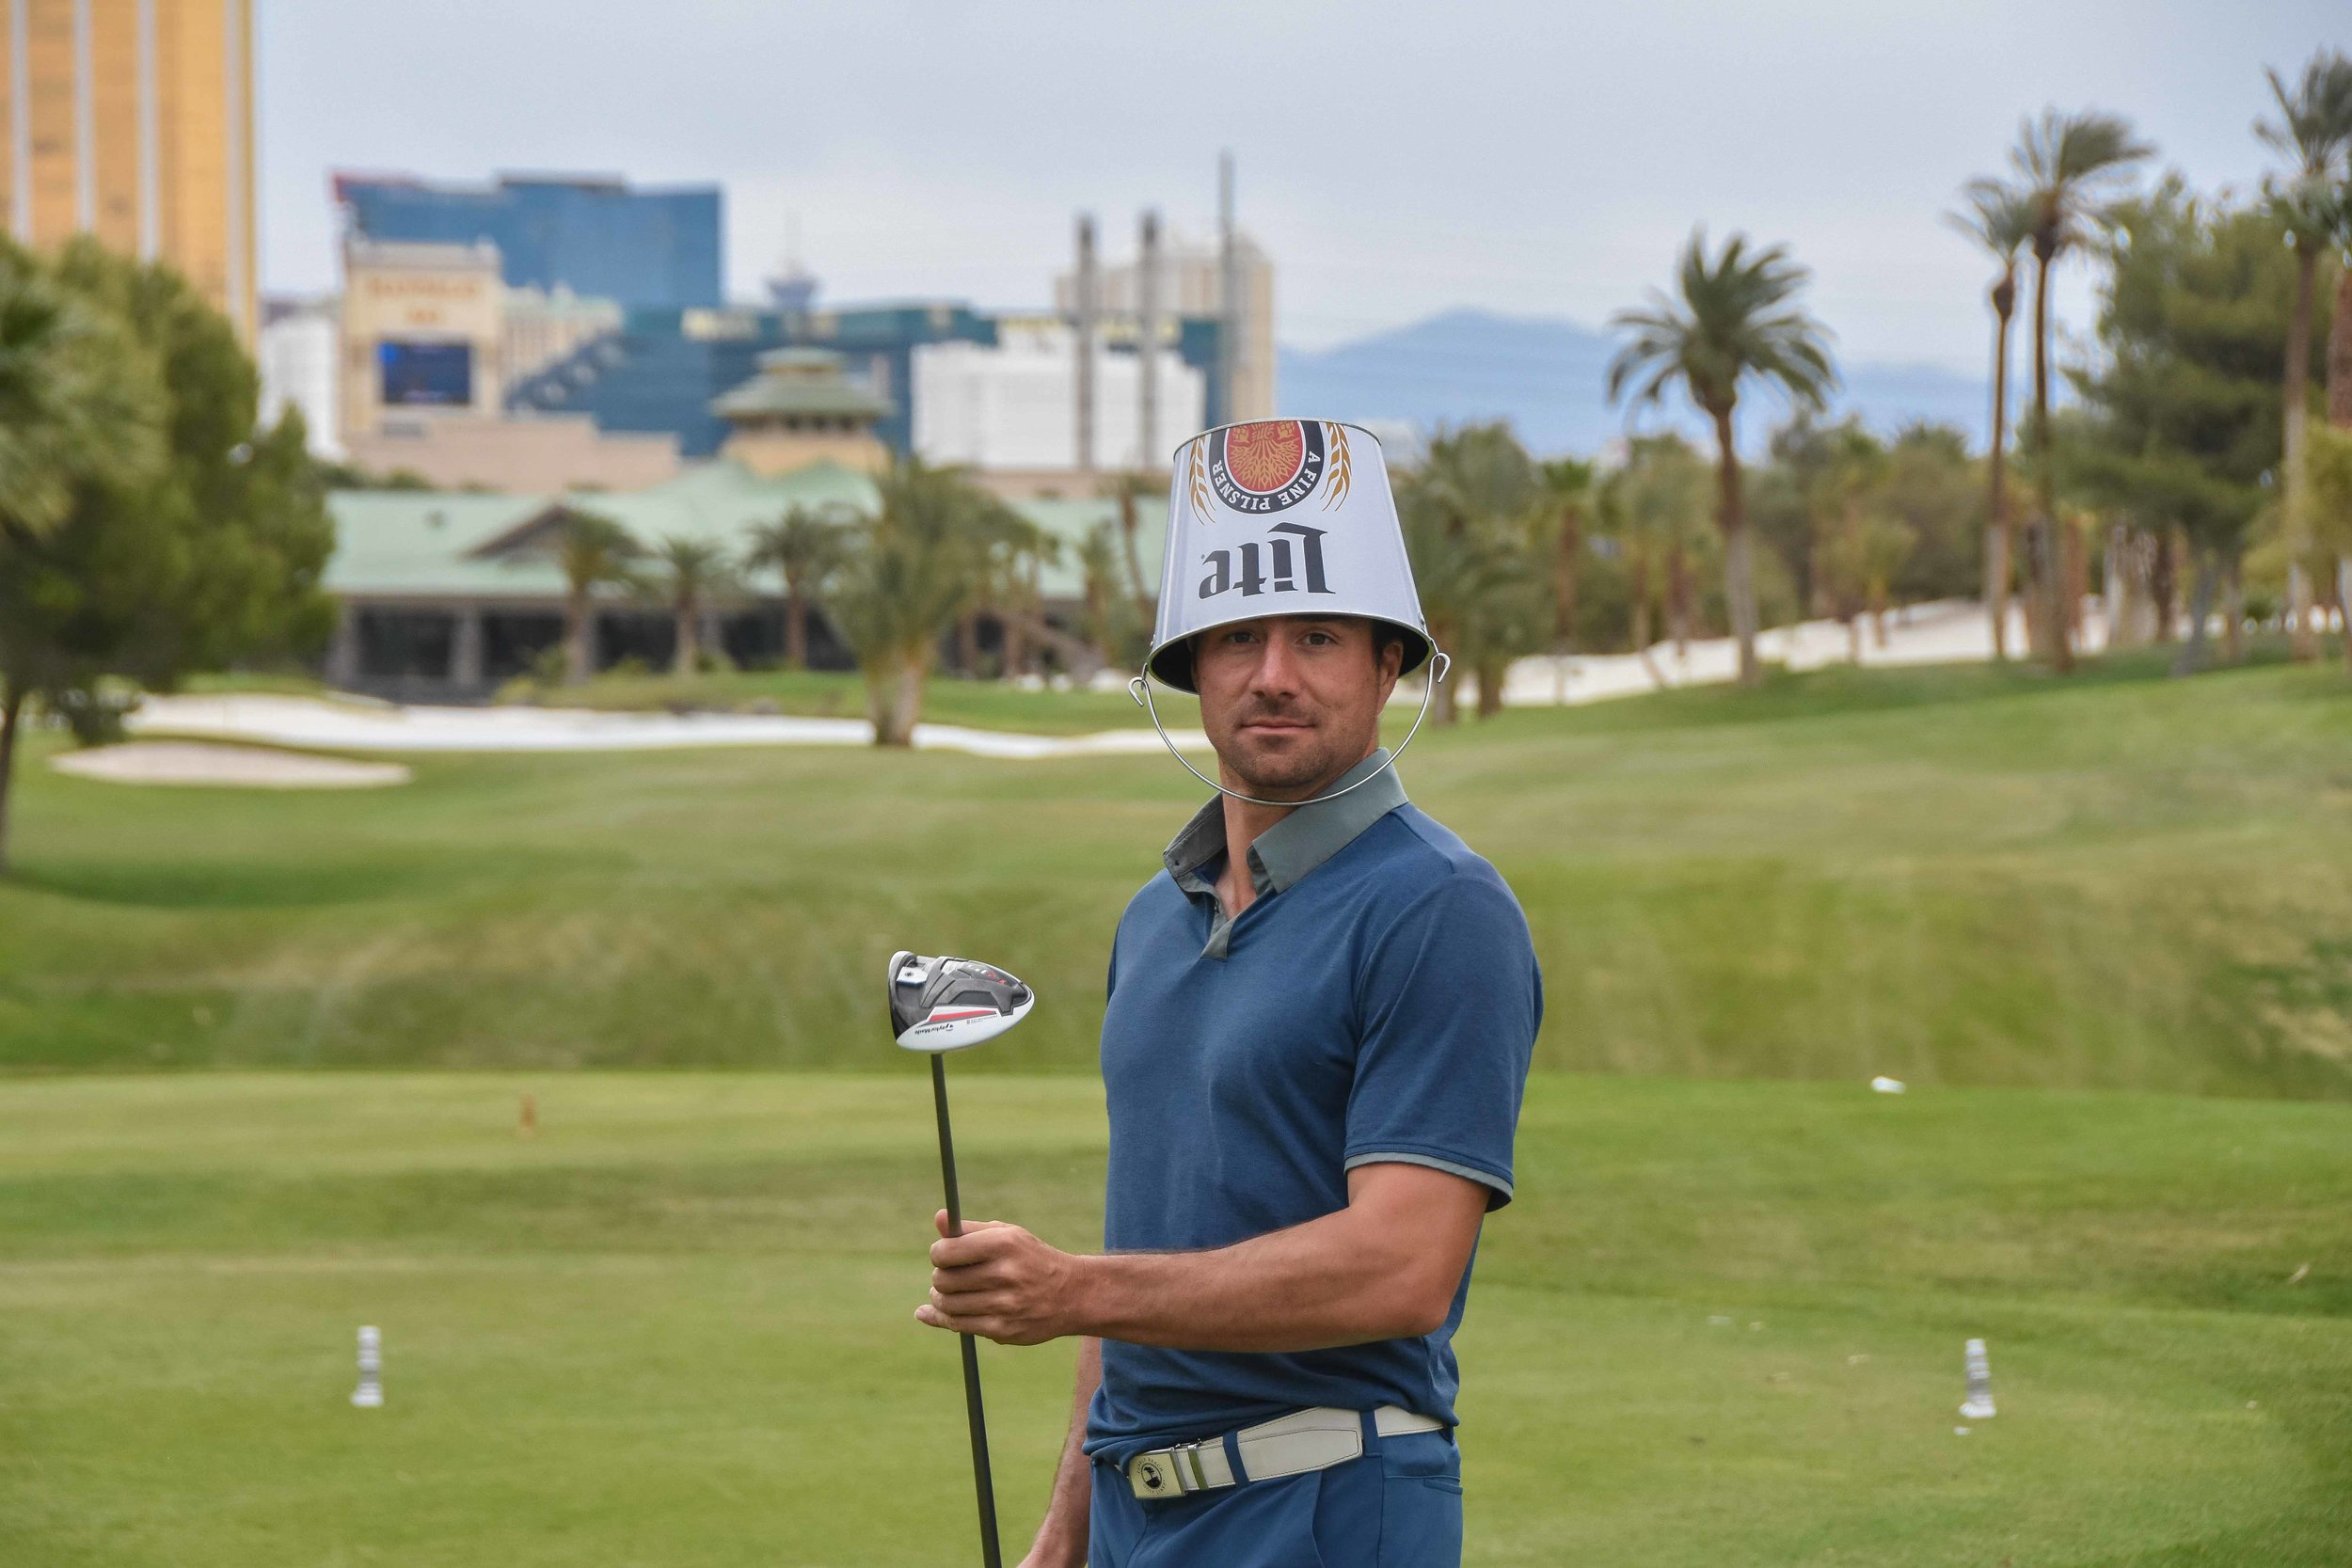 The 3 putt penalty hat lacks style and functionality